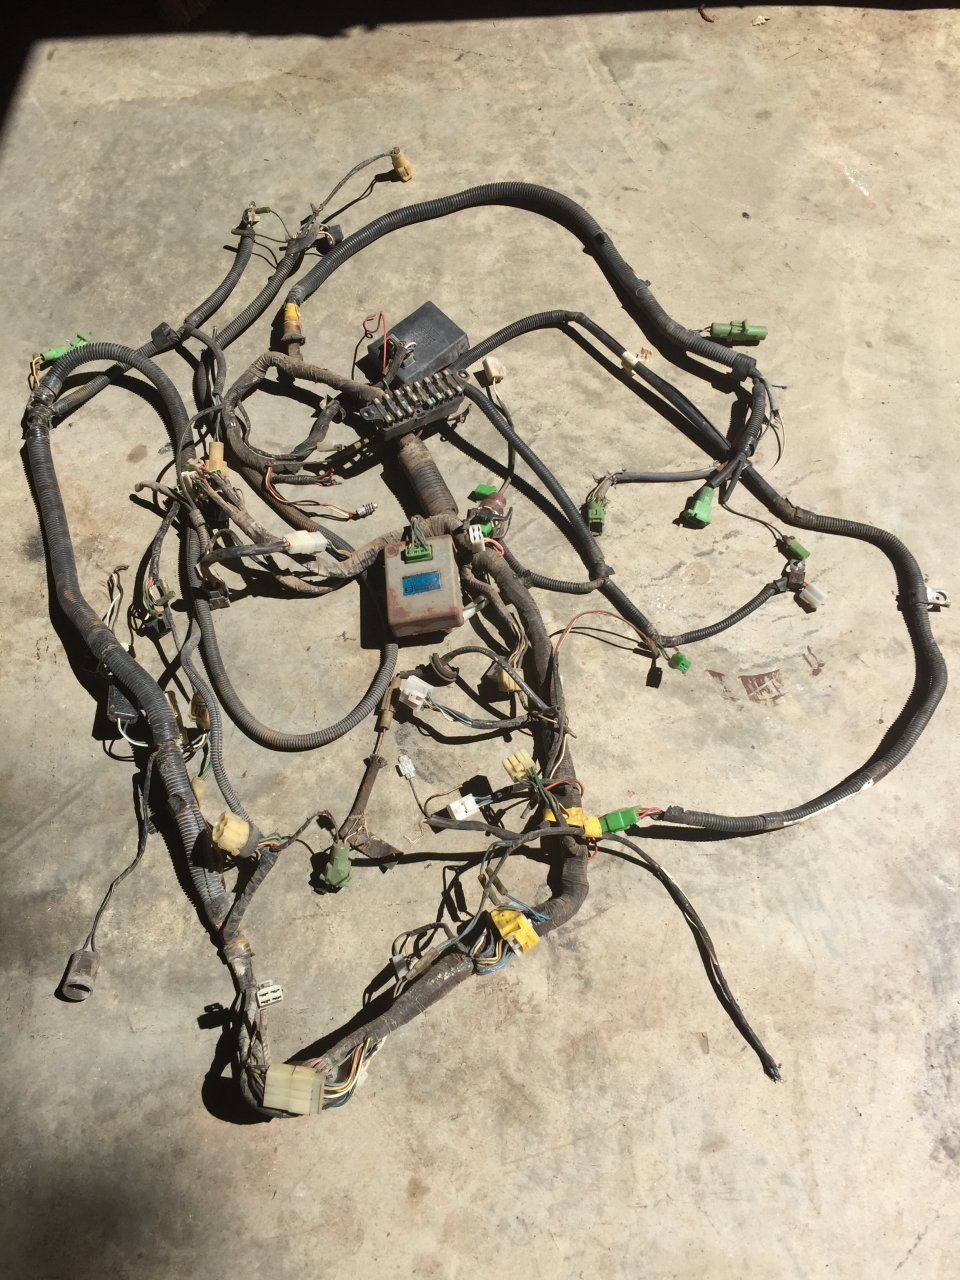 Wiring Harness For Sale : For sale fj wiring harness ga ih mud forum